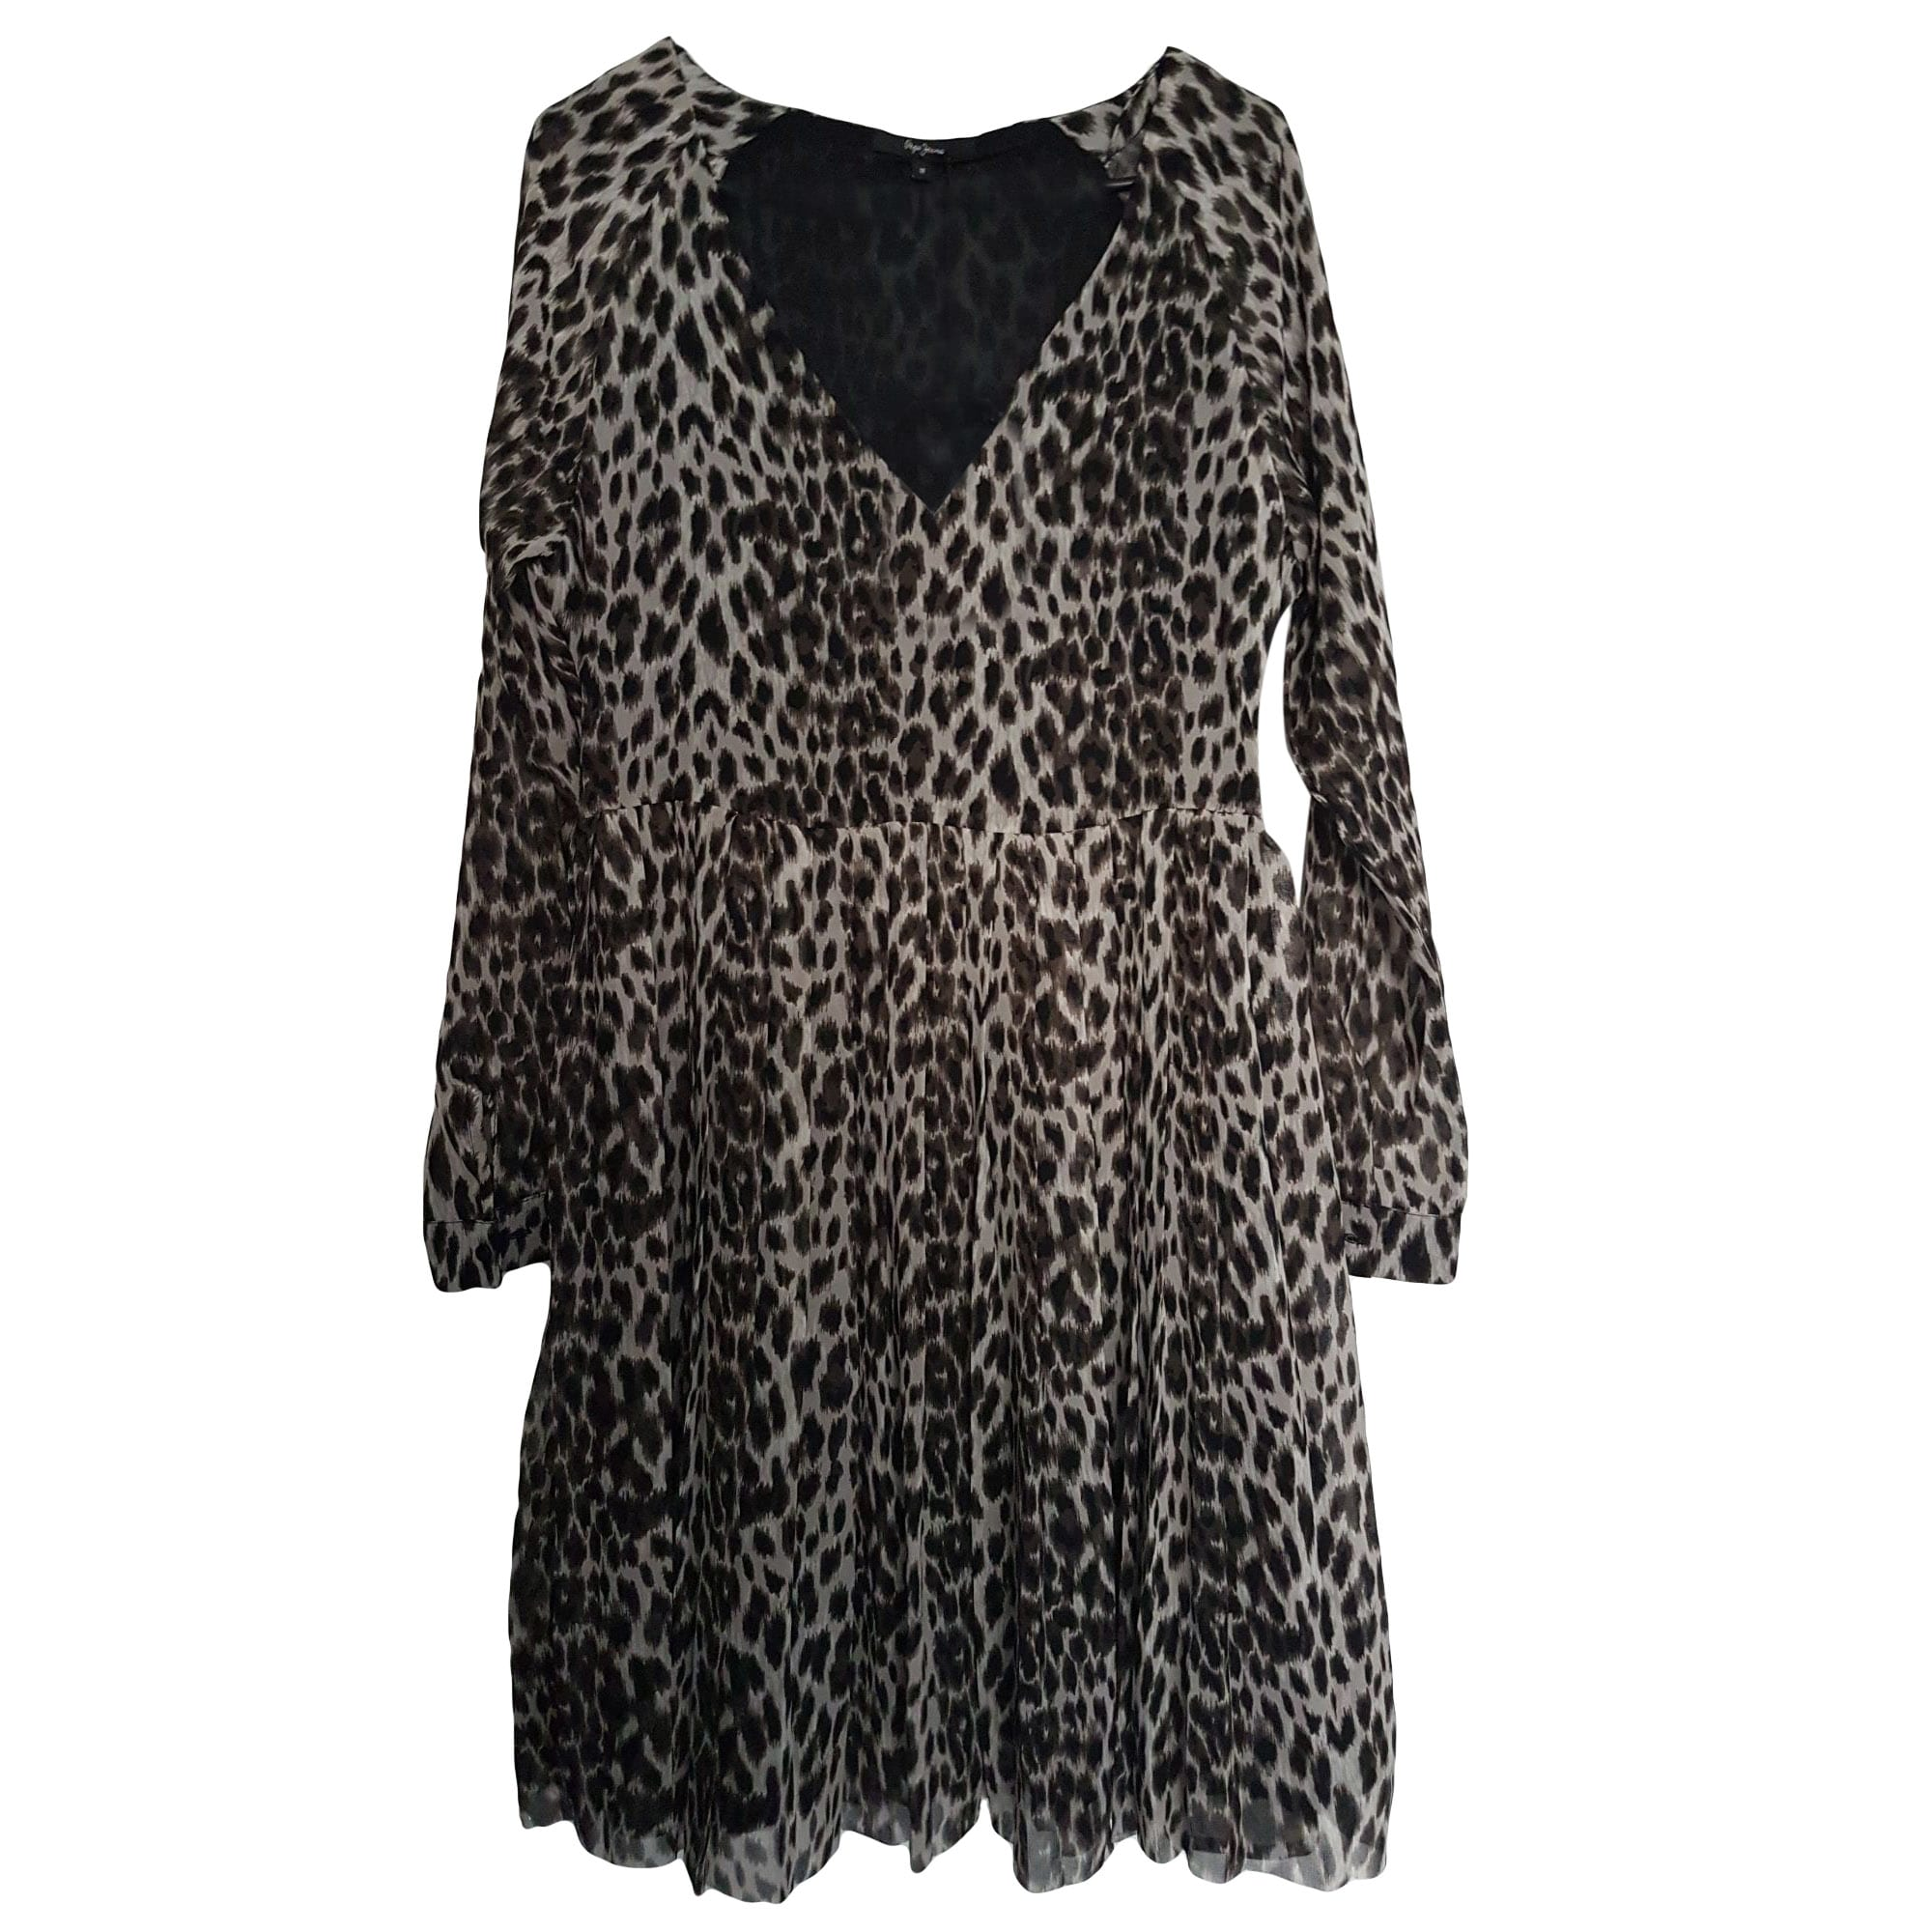 Robe Courte Pepe Jeans 38 M T2 Imprimes Animaliers 8068266